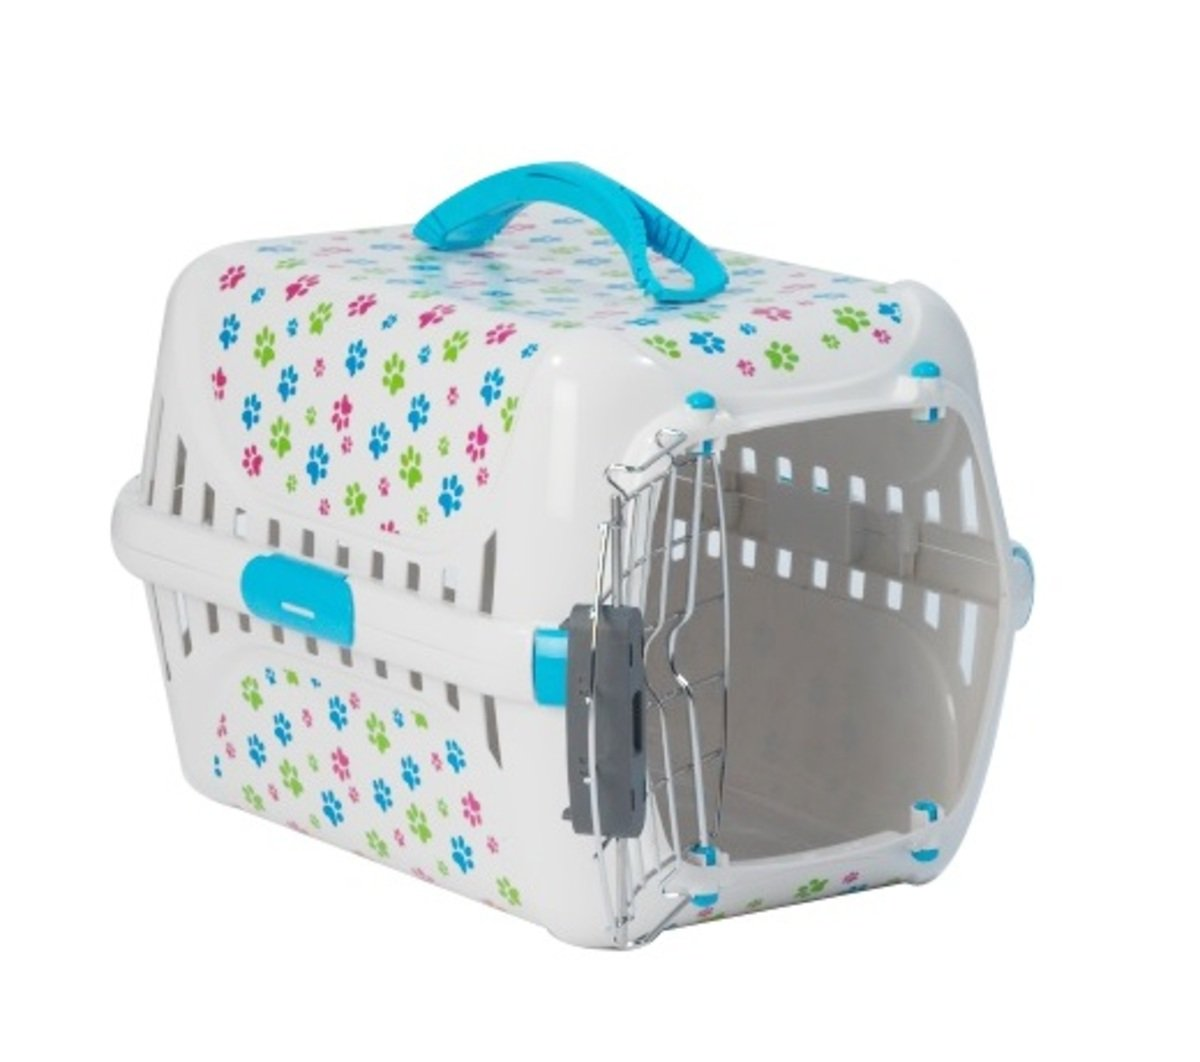 MPT153-119 Trendy Runner Portable Cage - Light Blue